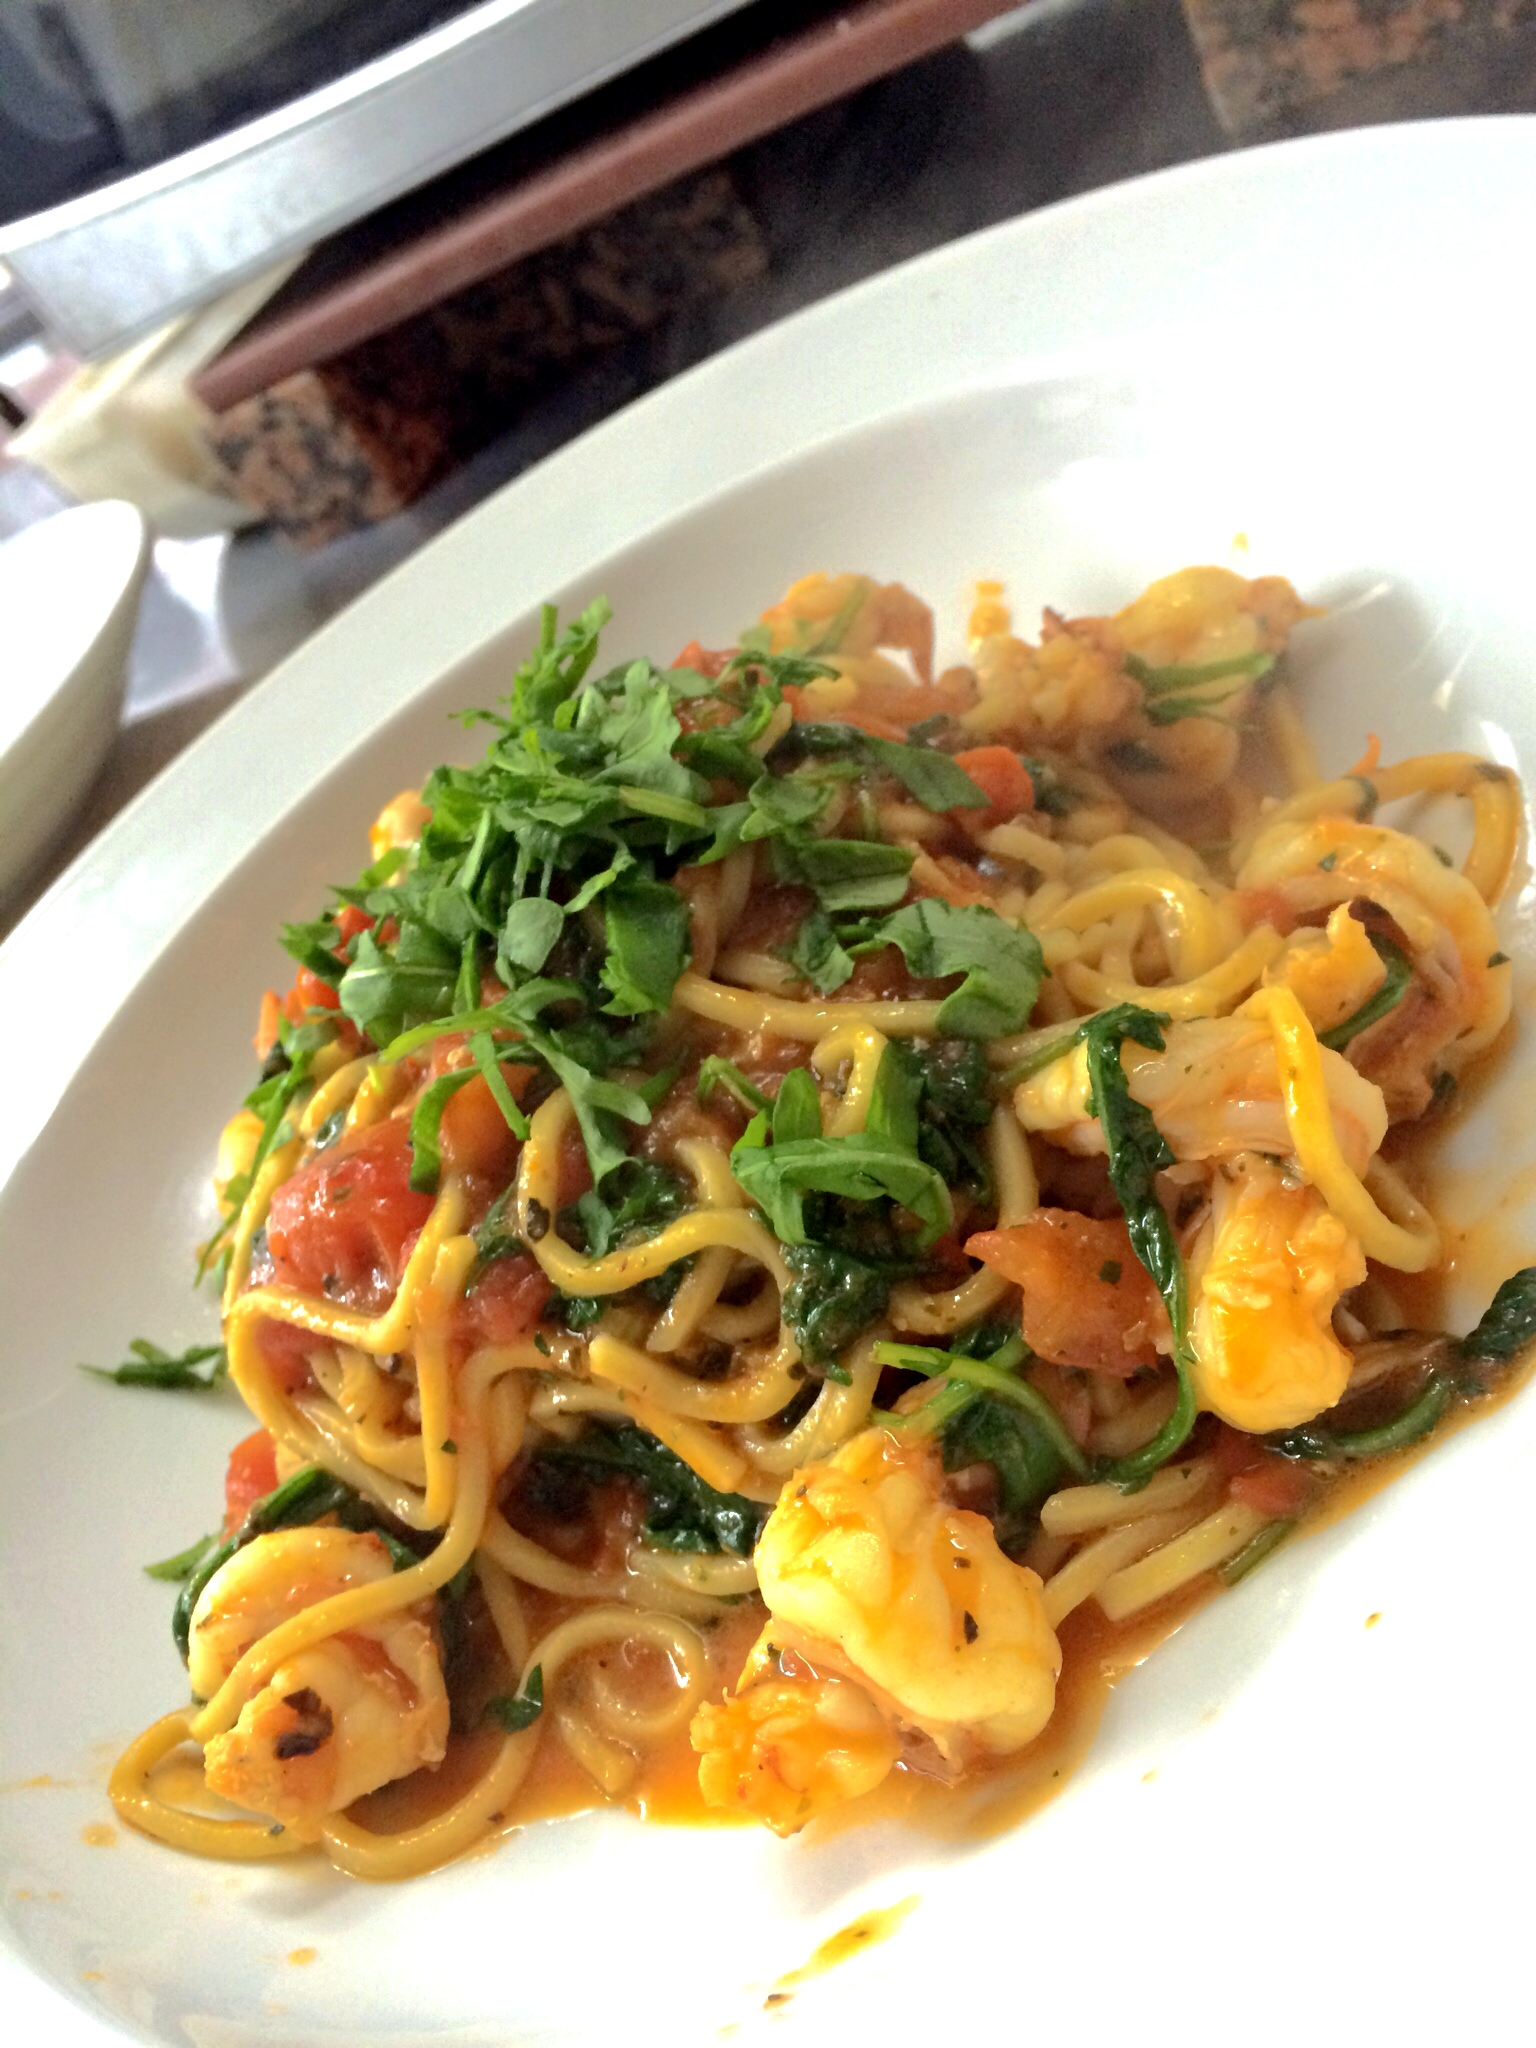 """Normal   0           false   false   false     EN-US   X-NONE   X-NONE                                                                                spaghetti with shrimp, arugula, in a cherry tomato sauce                                                                                                                                                                                                                                                                                                    /* Style Definitions */  table.MsoNormalTable {mso-style-name:""""Table Normal""""; mso-tstyle-rowband-size:0; mso-tstyle-colband-size:0; mso-style-noshow:yes; mso-style-priority:99; mso-style-qformat:yes; mso-style-parent:""""""""; mso-padding-alt:0in 5.4pt 0in 5.4pt; mso-para-margin-top:0in; mso-para-margin-right:0in; mso-para-margin-bottom:10.0pt; mso-para-margin-left:0in; line-height:115%; mso-pagination:widow-orphan; font-size:11.0pt; font-family:""""Calibri"""",""""sans-serif""""; mso-ascii-font-family:Calibri; mso-ascii-theme-font:minor-latin; mso-fareast-font-family:""""Times New Roman""""; mso-fareast-theme-font:minor-fareast; mso-hansi-font-family:Calibri; mso-hansi-theme-font:minor-latin;}"""